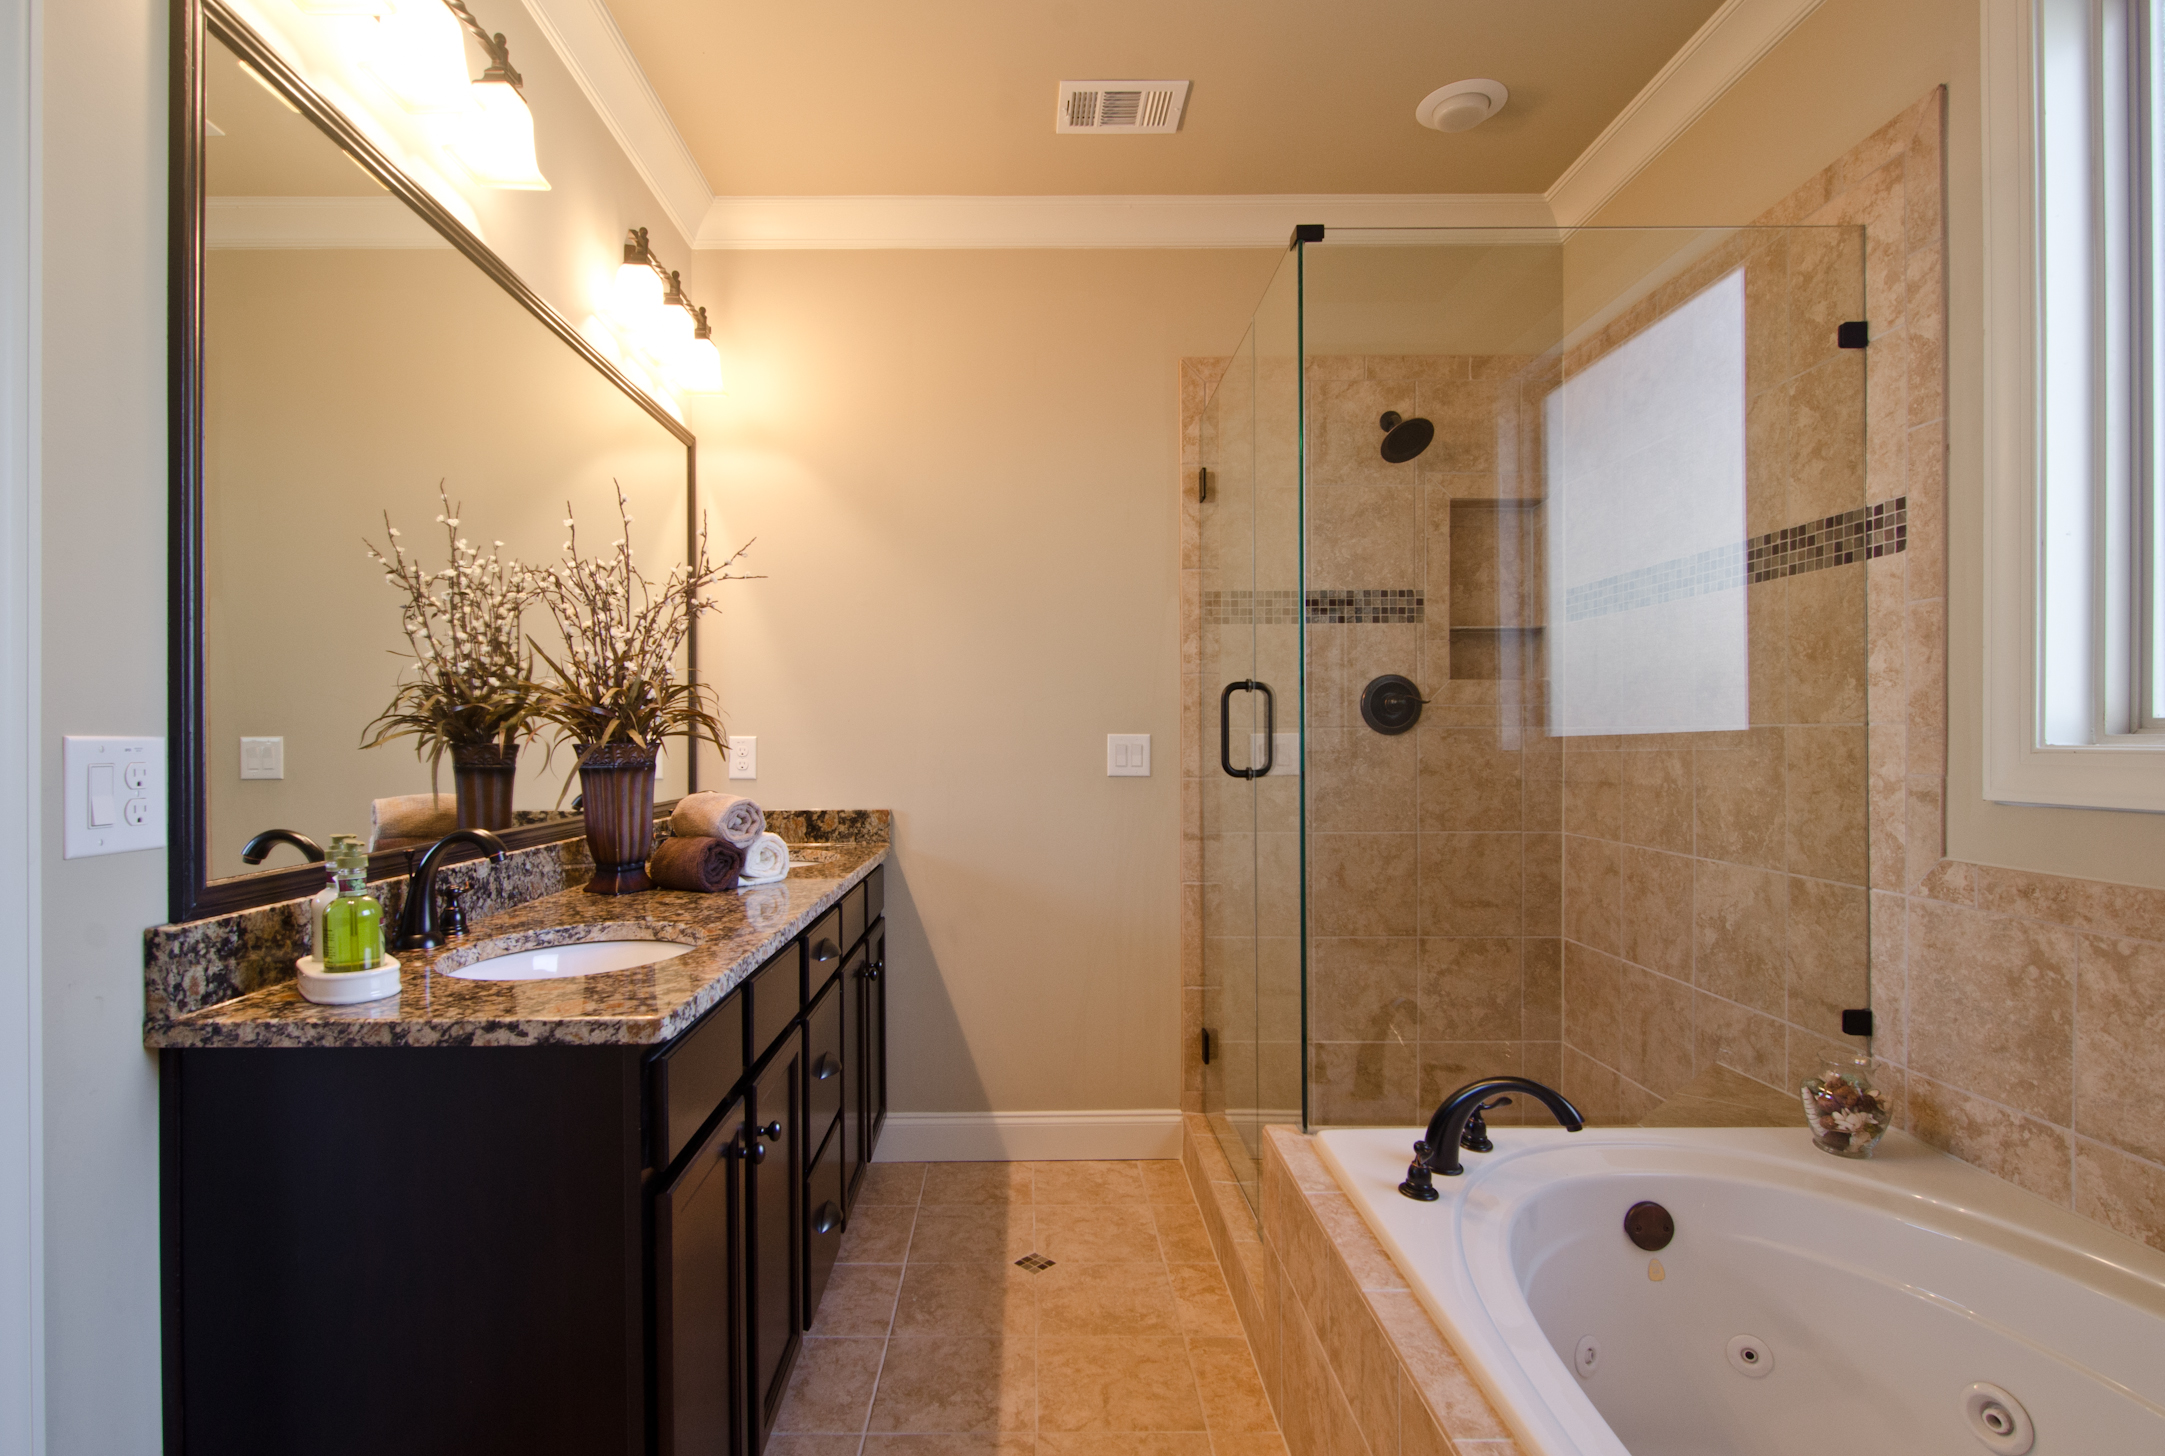 kitchen-bathroom-remodeling-new-jersey-goias-home-improvement (5).jpg